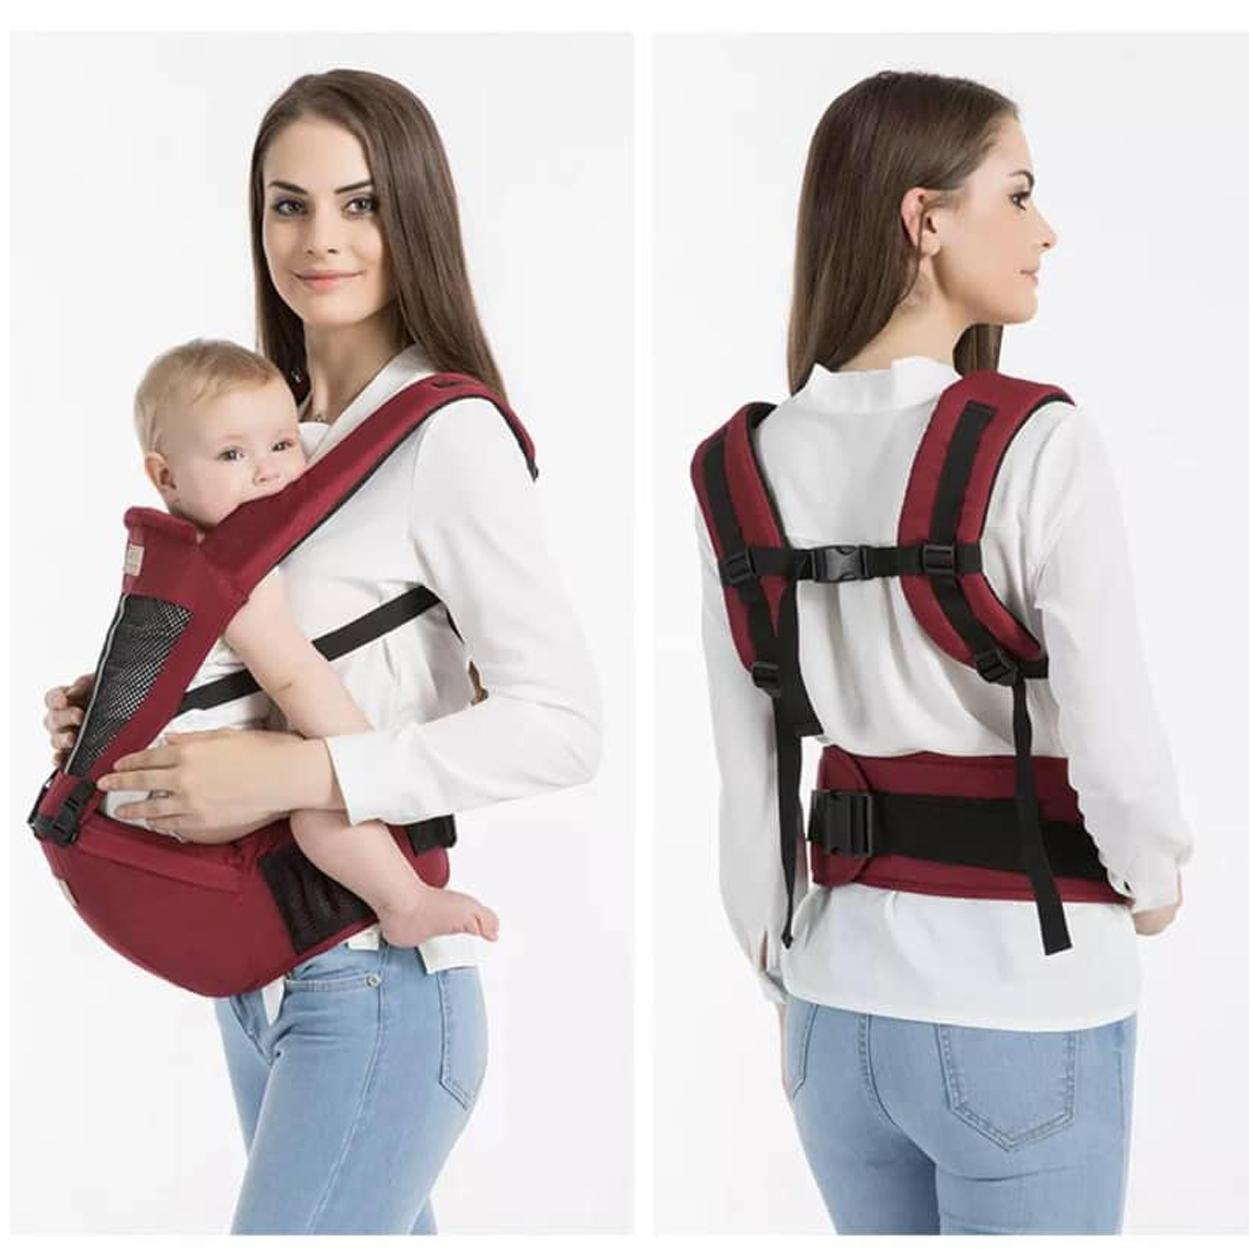 Activity & Gear Multifunctional Baby Hipseat For Prevent O-type Legs 3 In 1 Newborn Baby Carrier Infant Sling Backpacks 0-30 Months Pouch Wraps